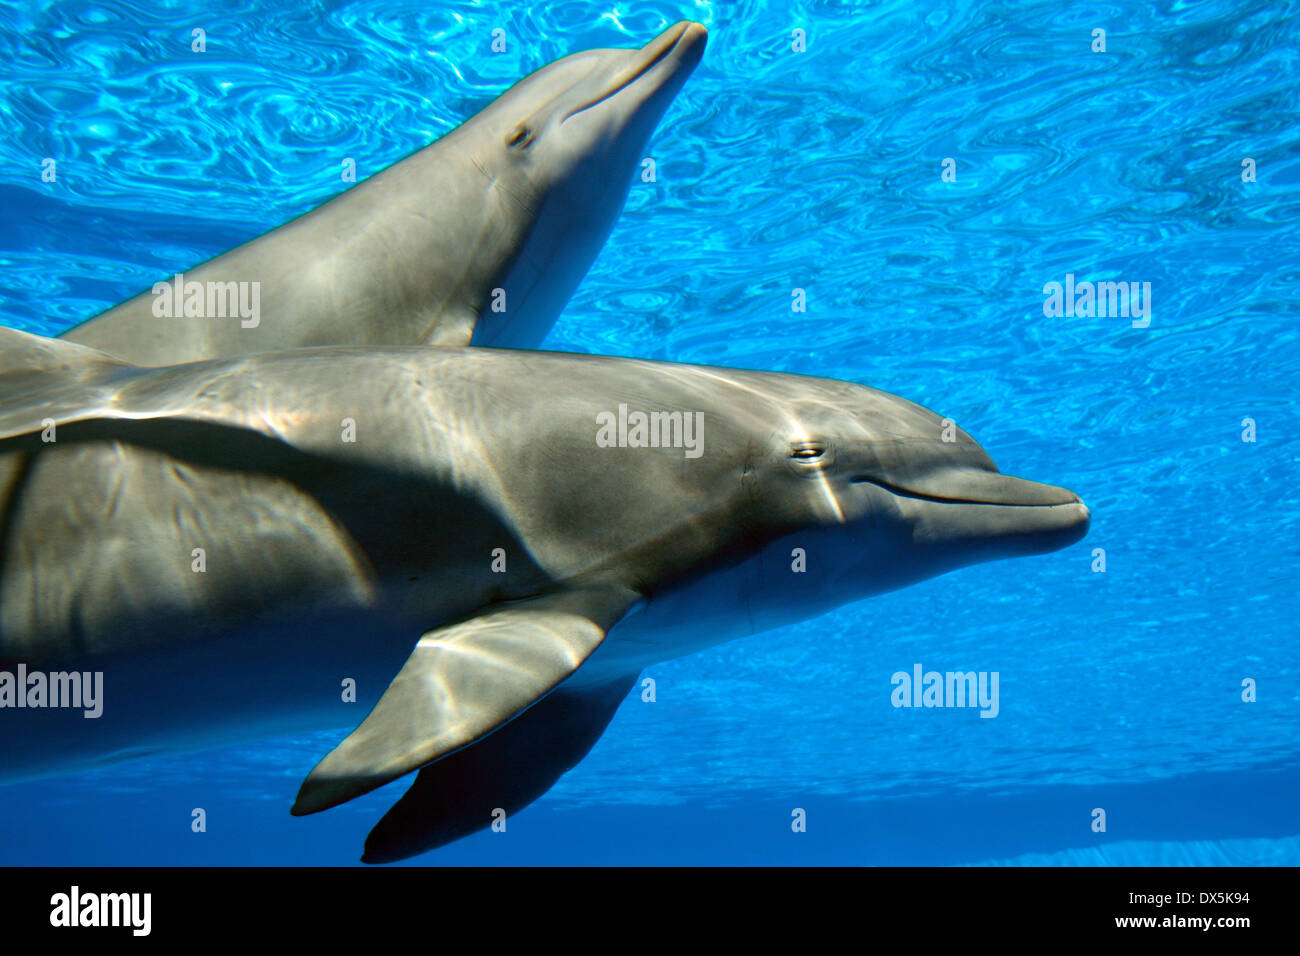 A couple of dolphins swimming. - Stock Image